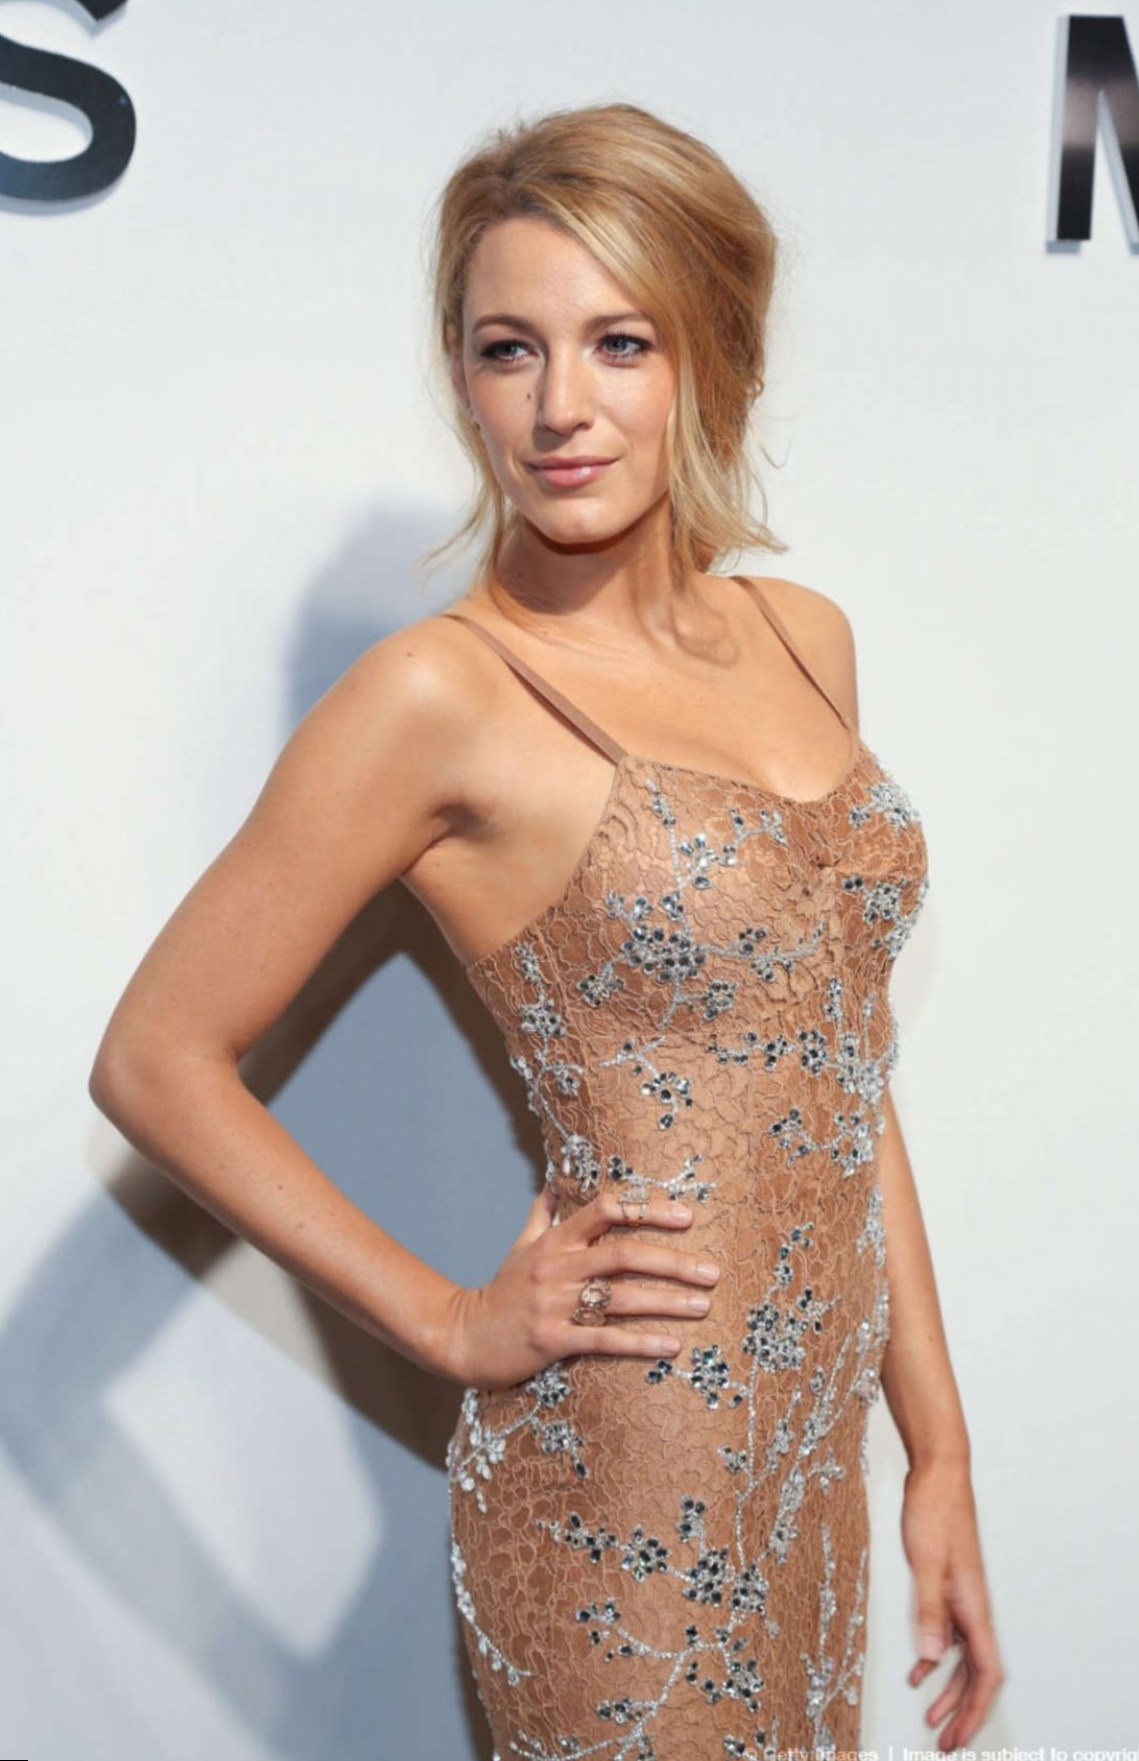 Blake Lively - Celebrity Weight, Height and Age